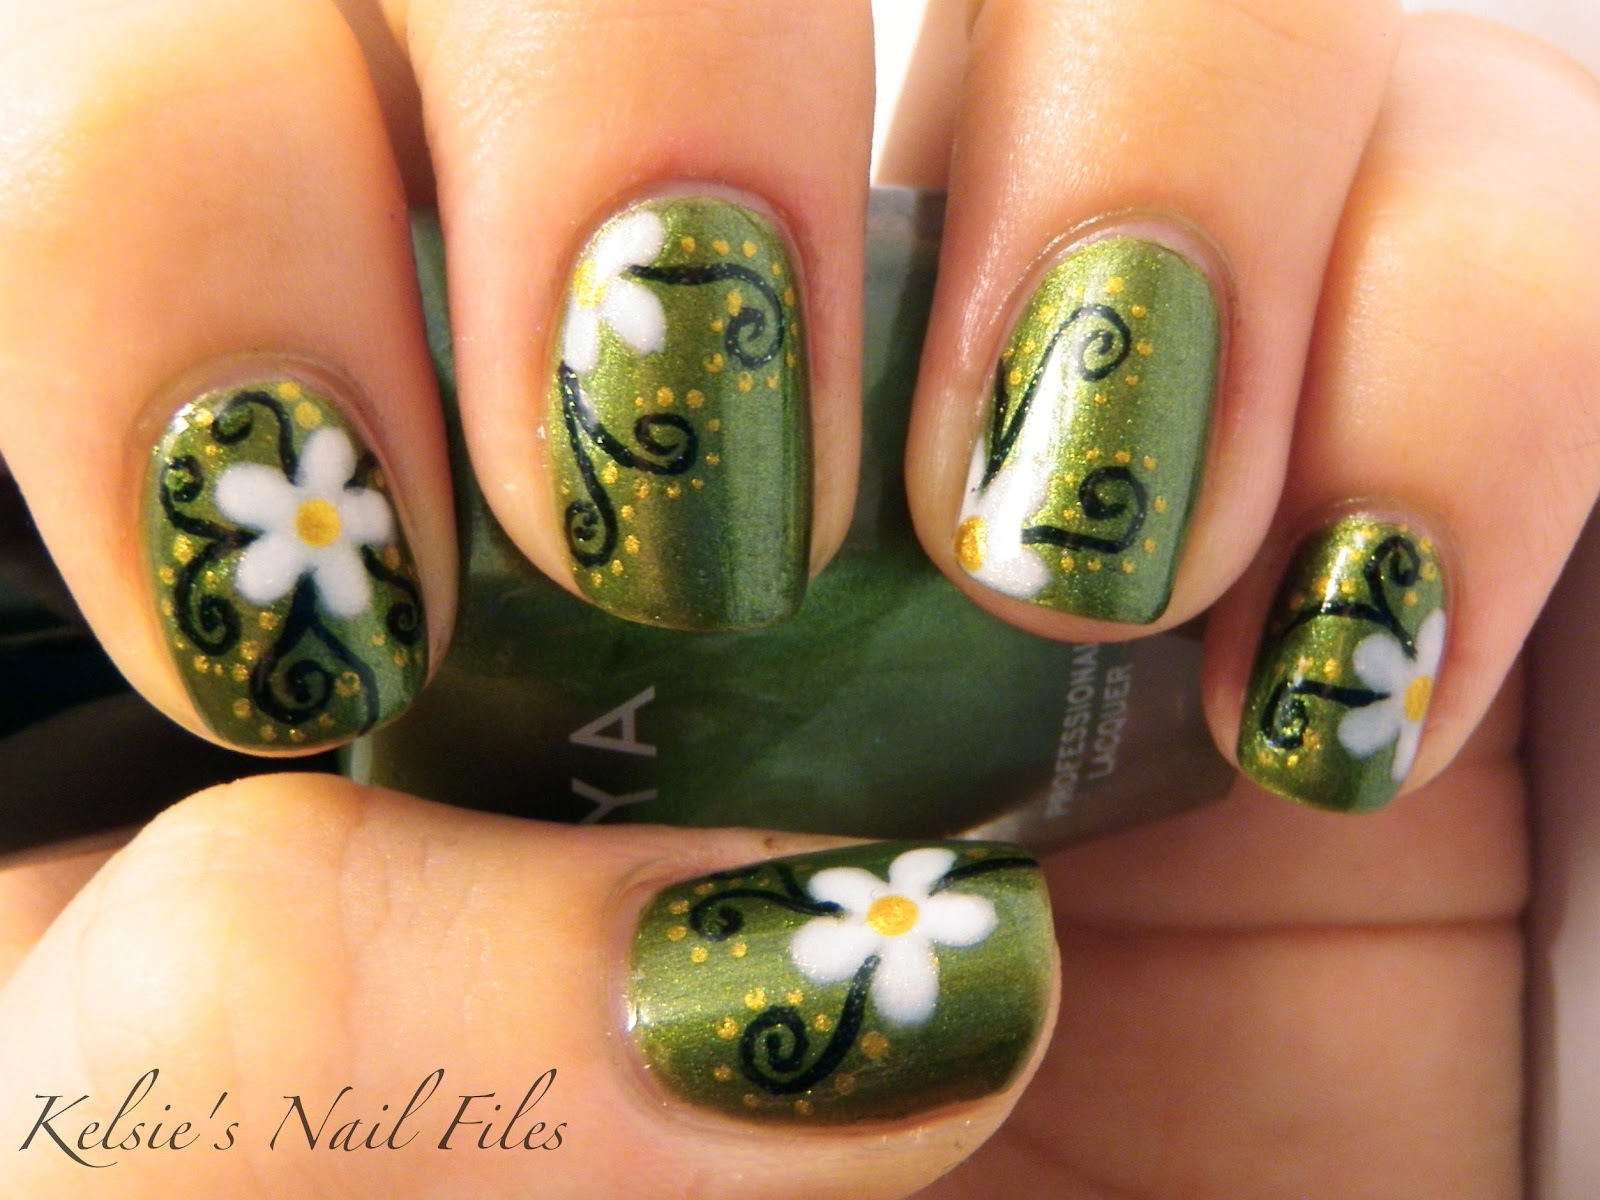 Kelsie's Nail Files: Day 4: GREEN nails